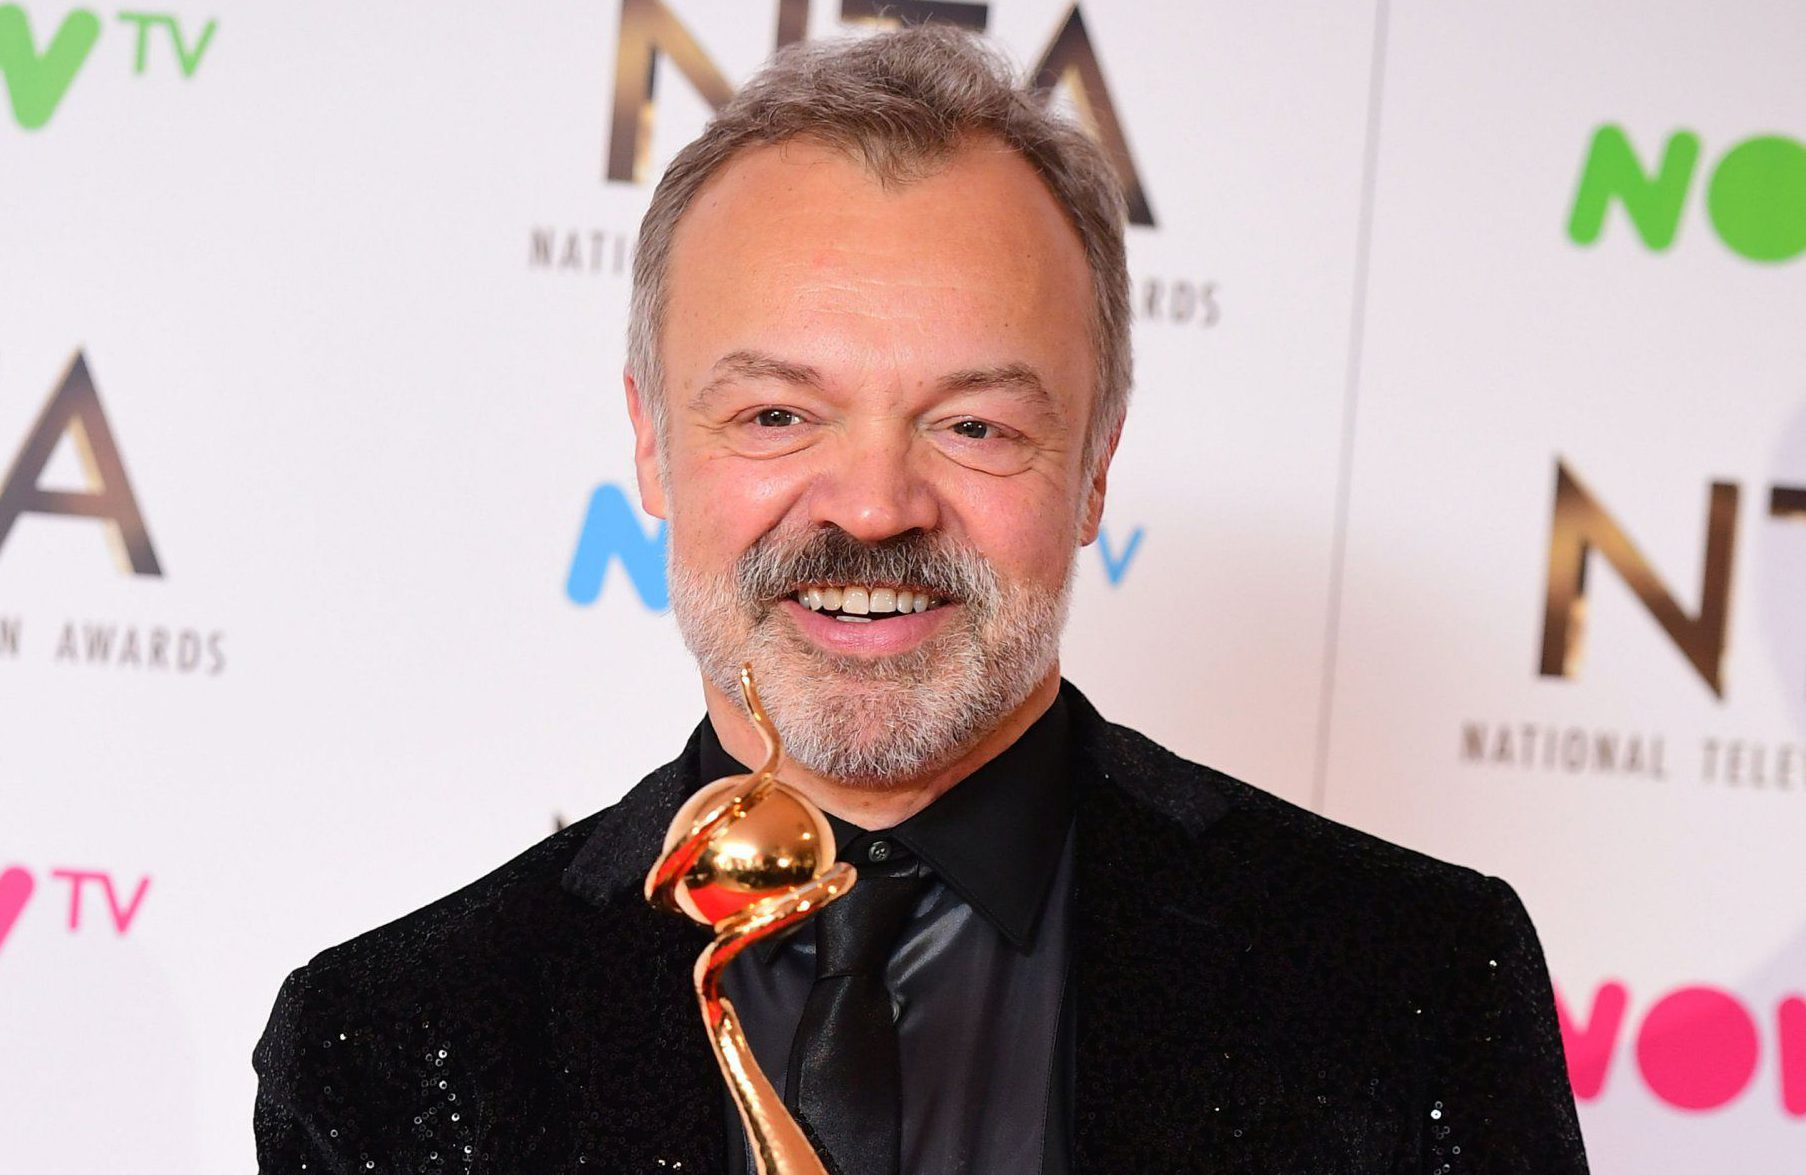 Eurovision 2017: Graham Norton is still 'not sure' of the UK's chances